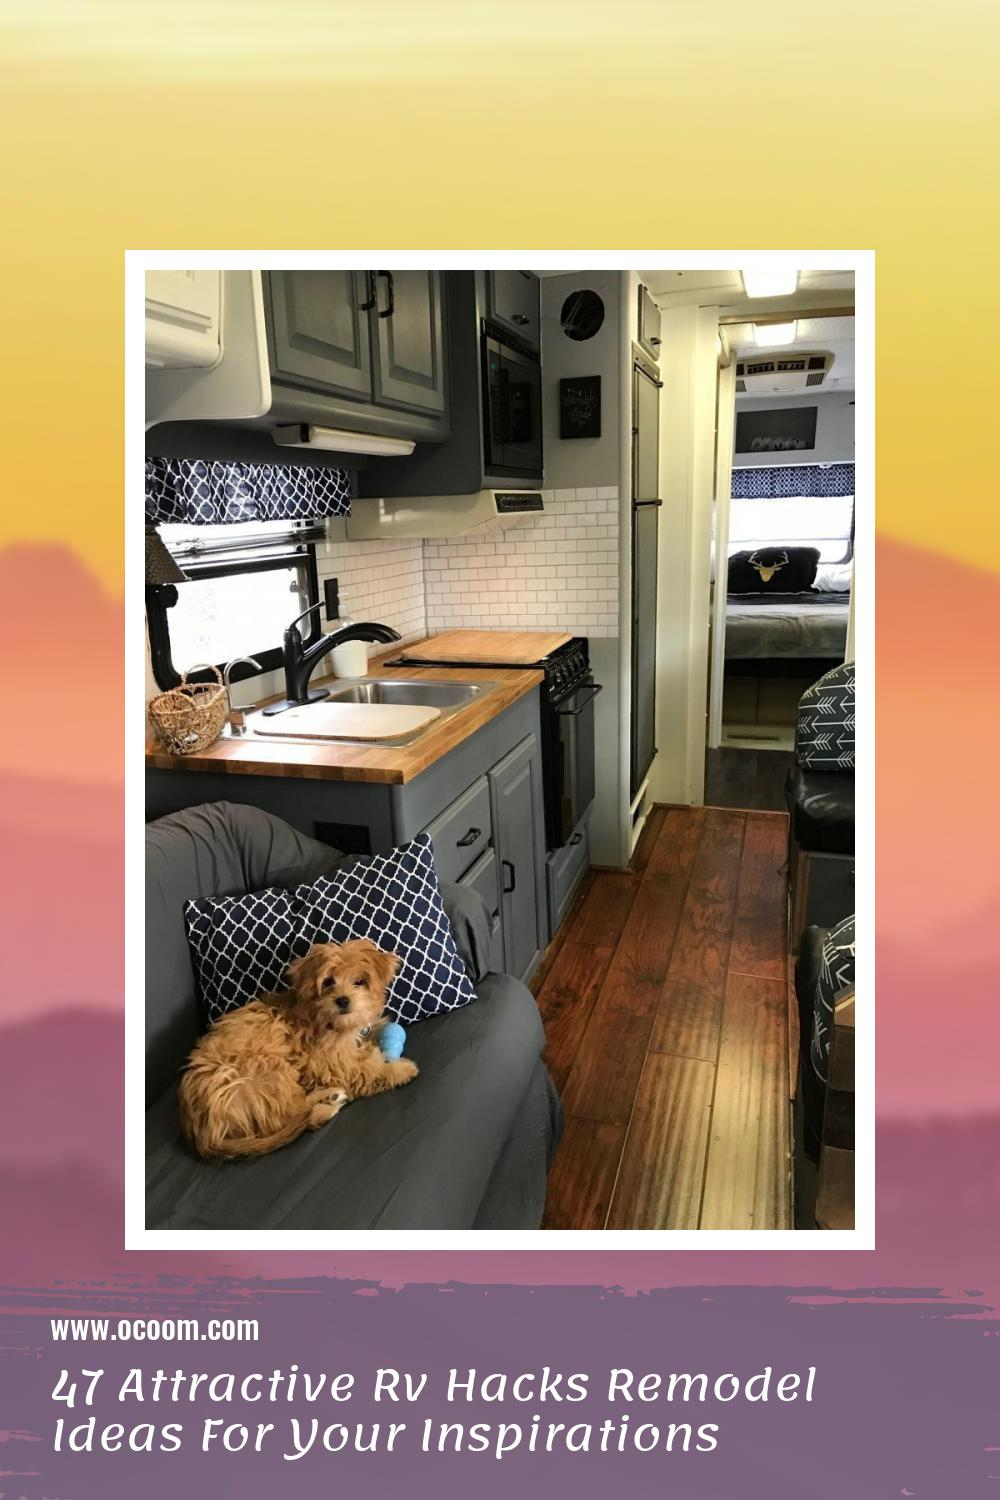 47 Attractive Rv Hacks Remodel Ideas For Your Inspirations 34